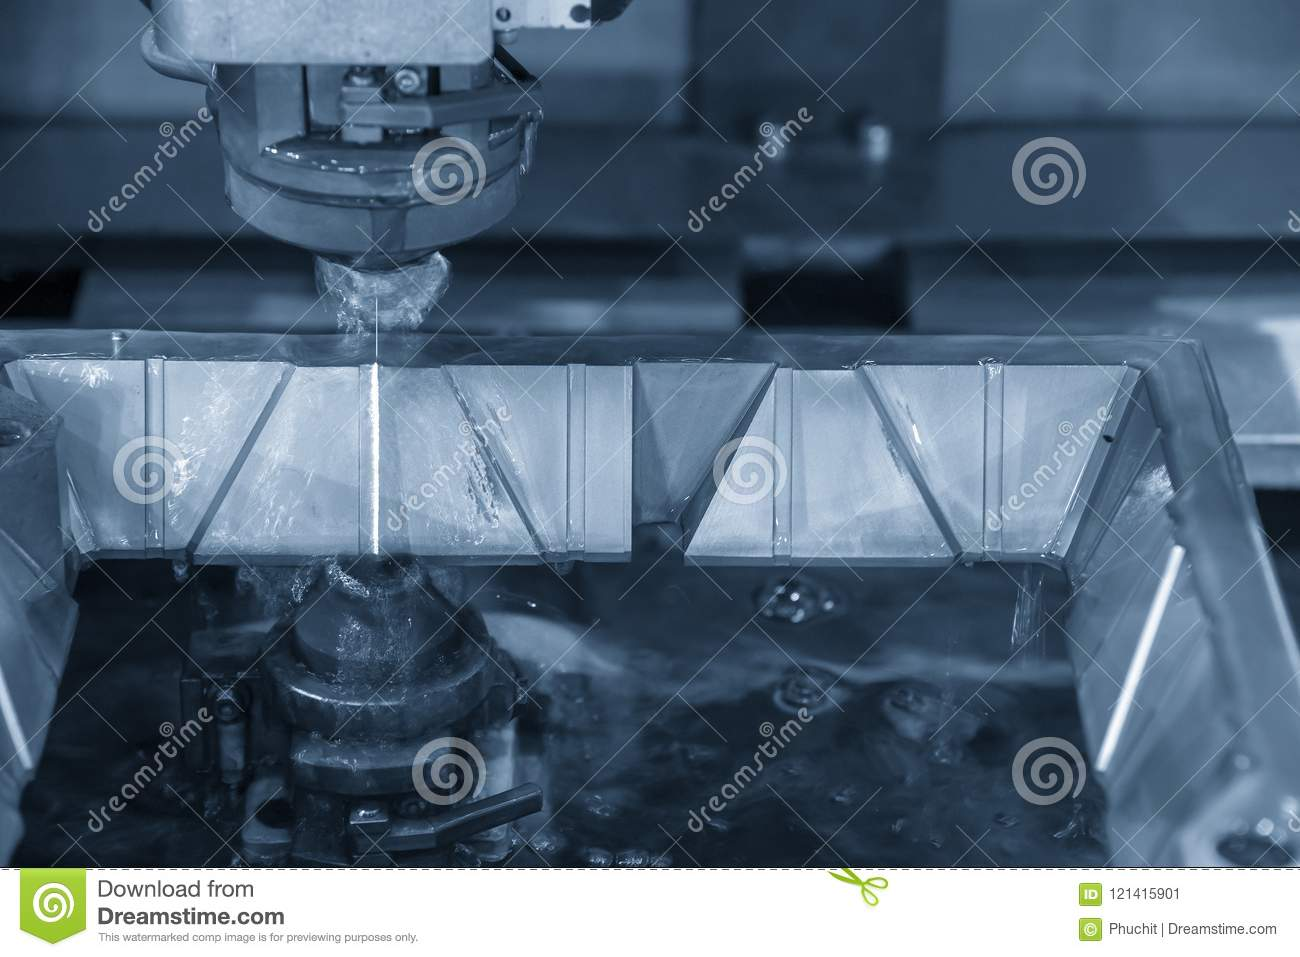 The CNC Wire-edm Machine Cutting The Metal Plate Stock Image - Image ...